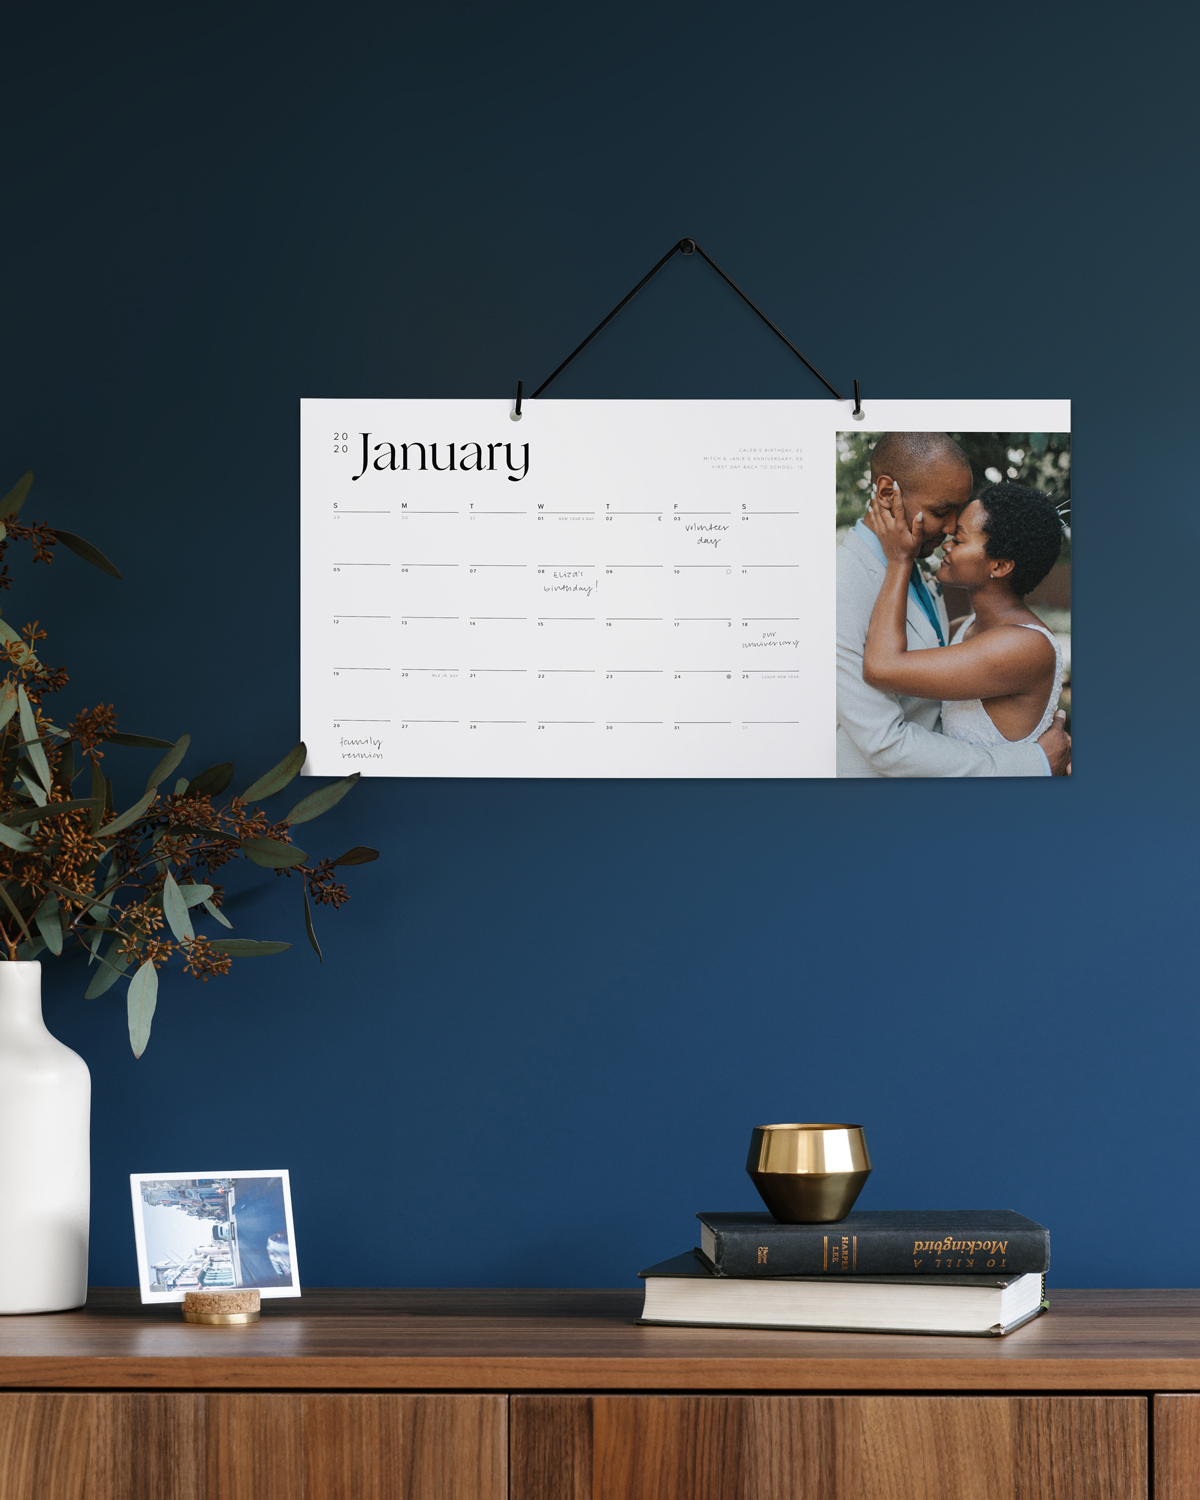 Wall calendar featuring photo of couple embracing on right side